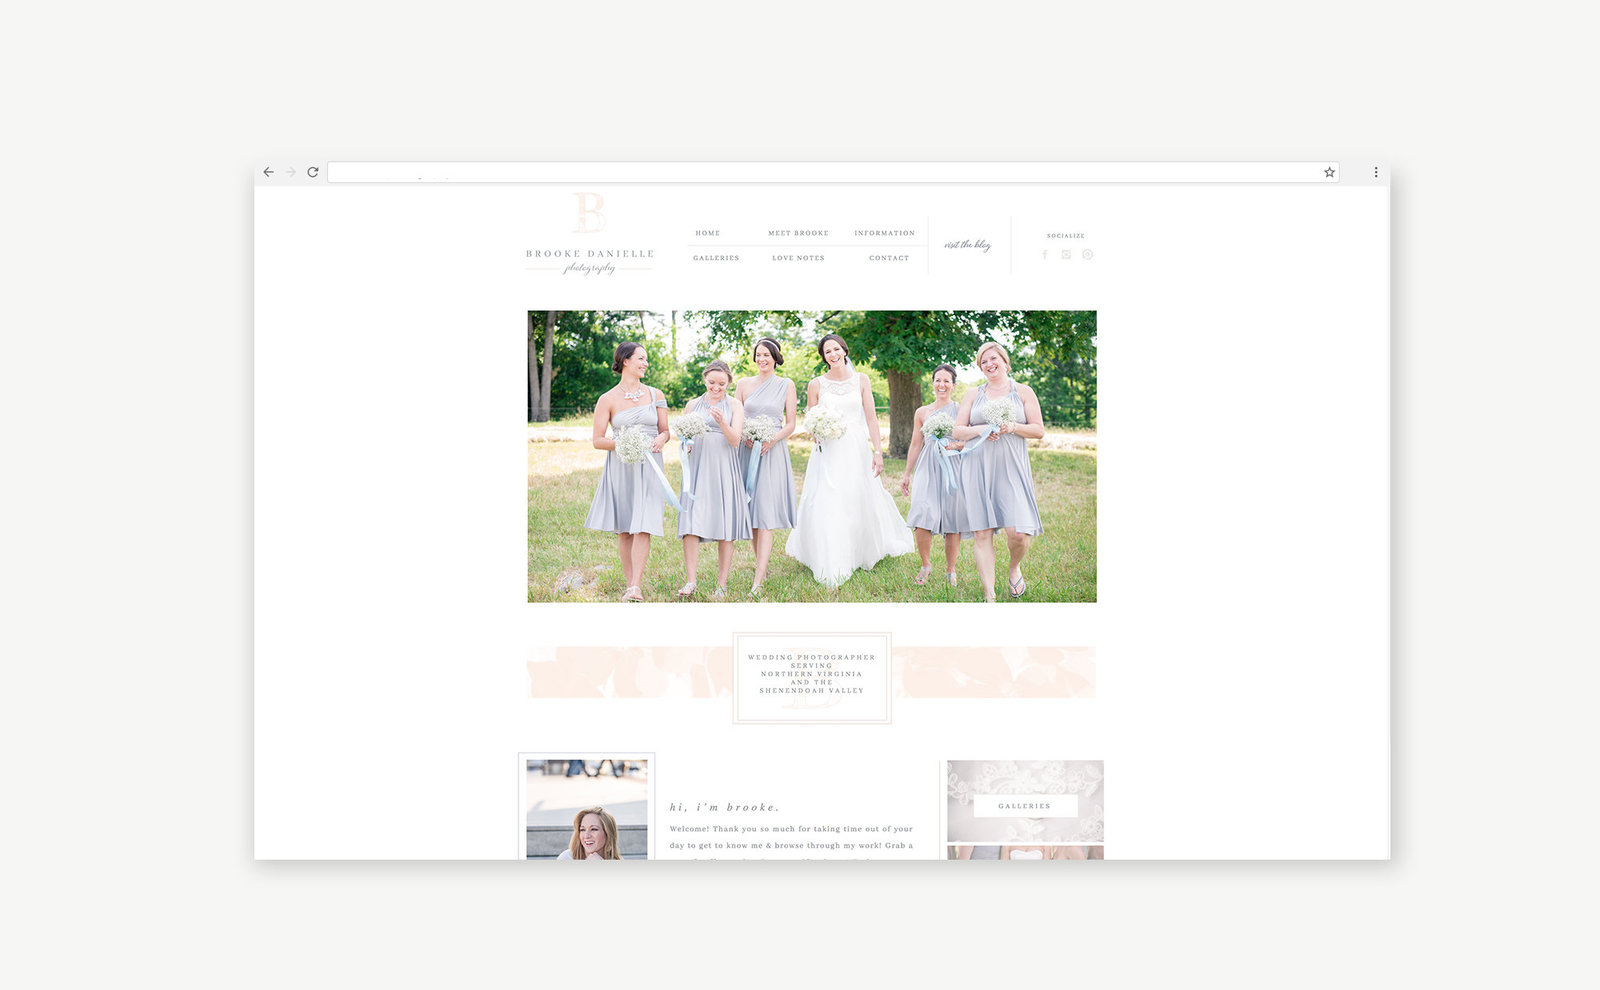 branding-for-photographers-web-design-brooke-danielle-02